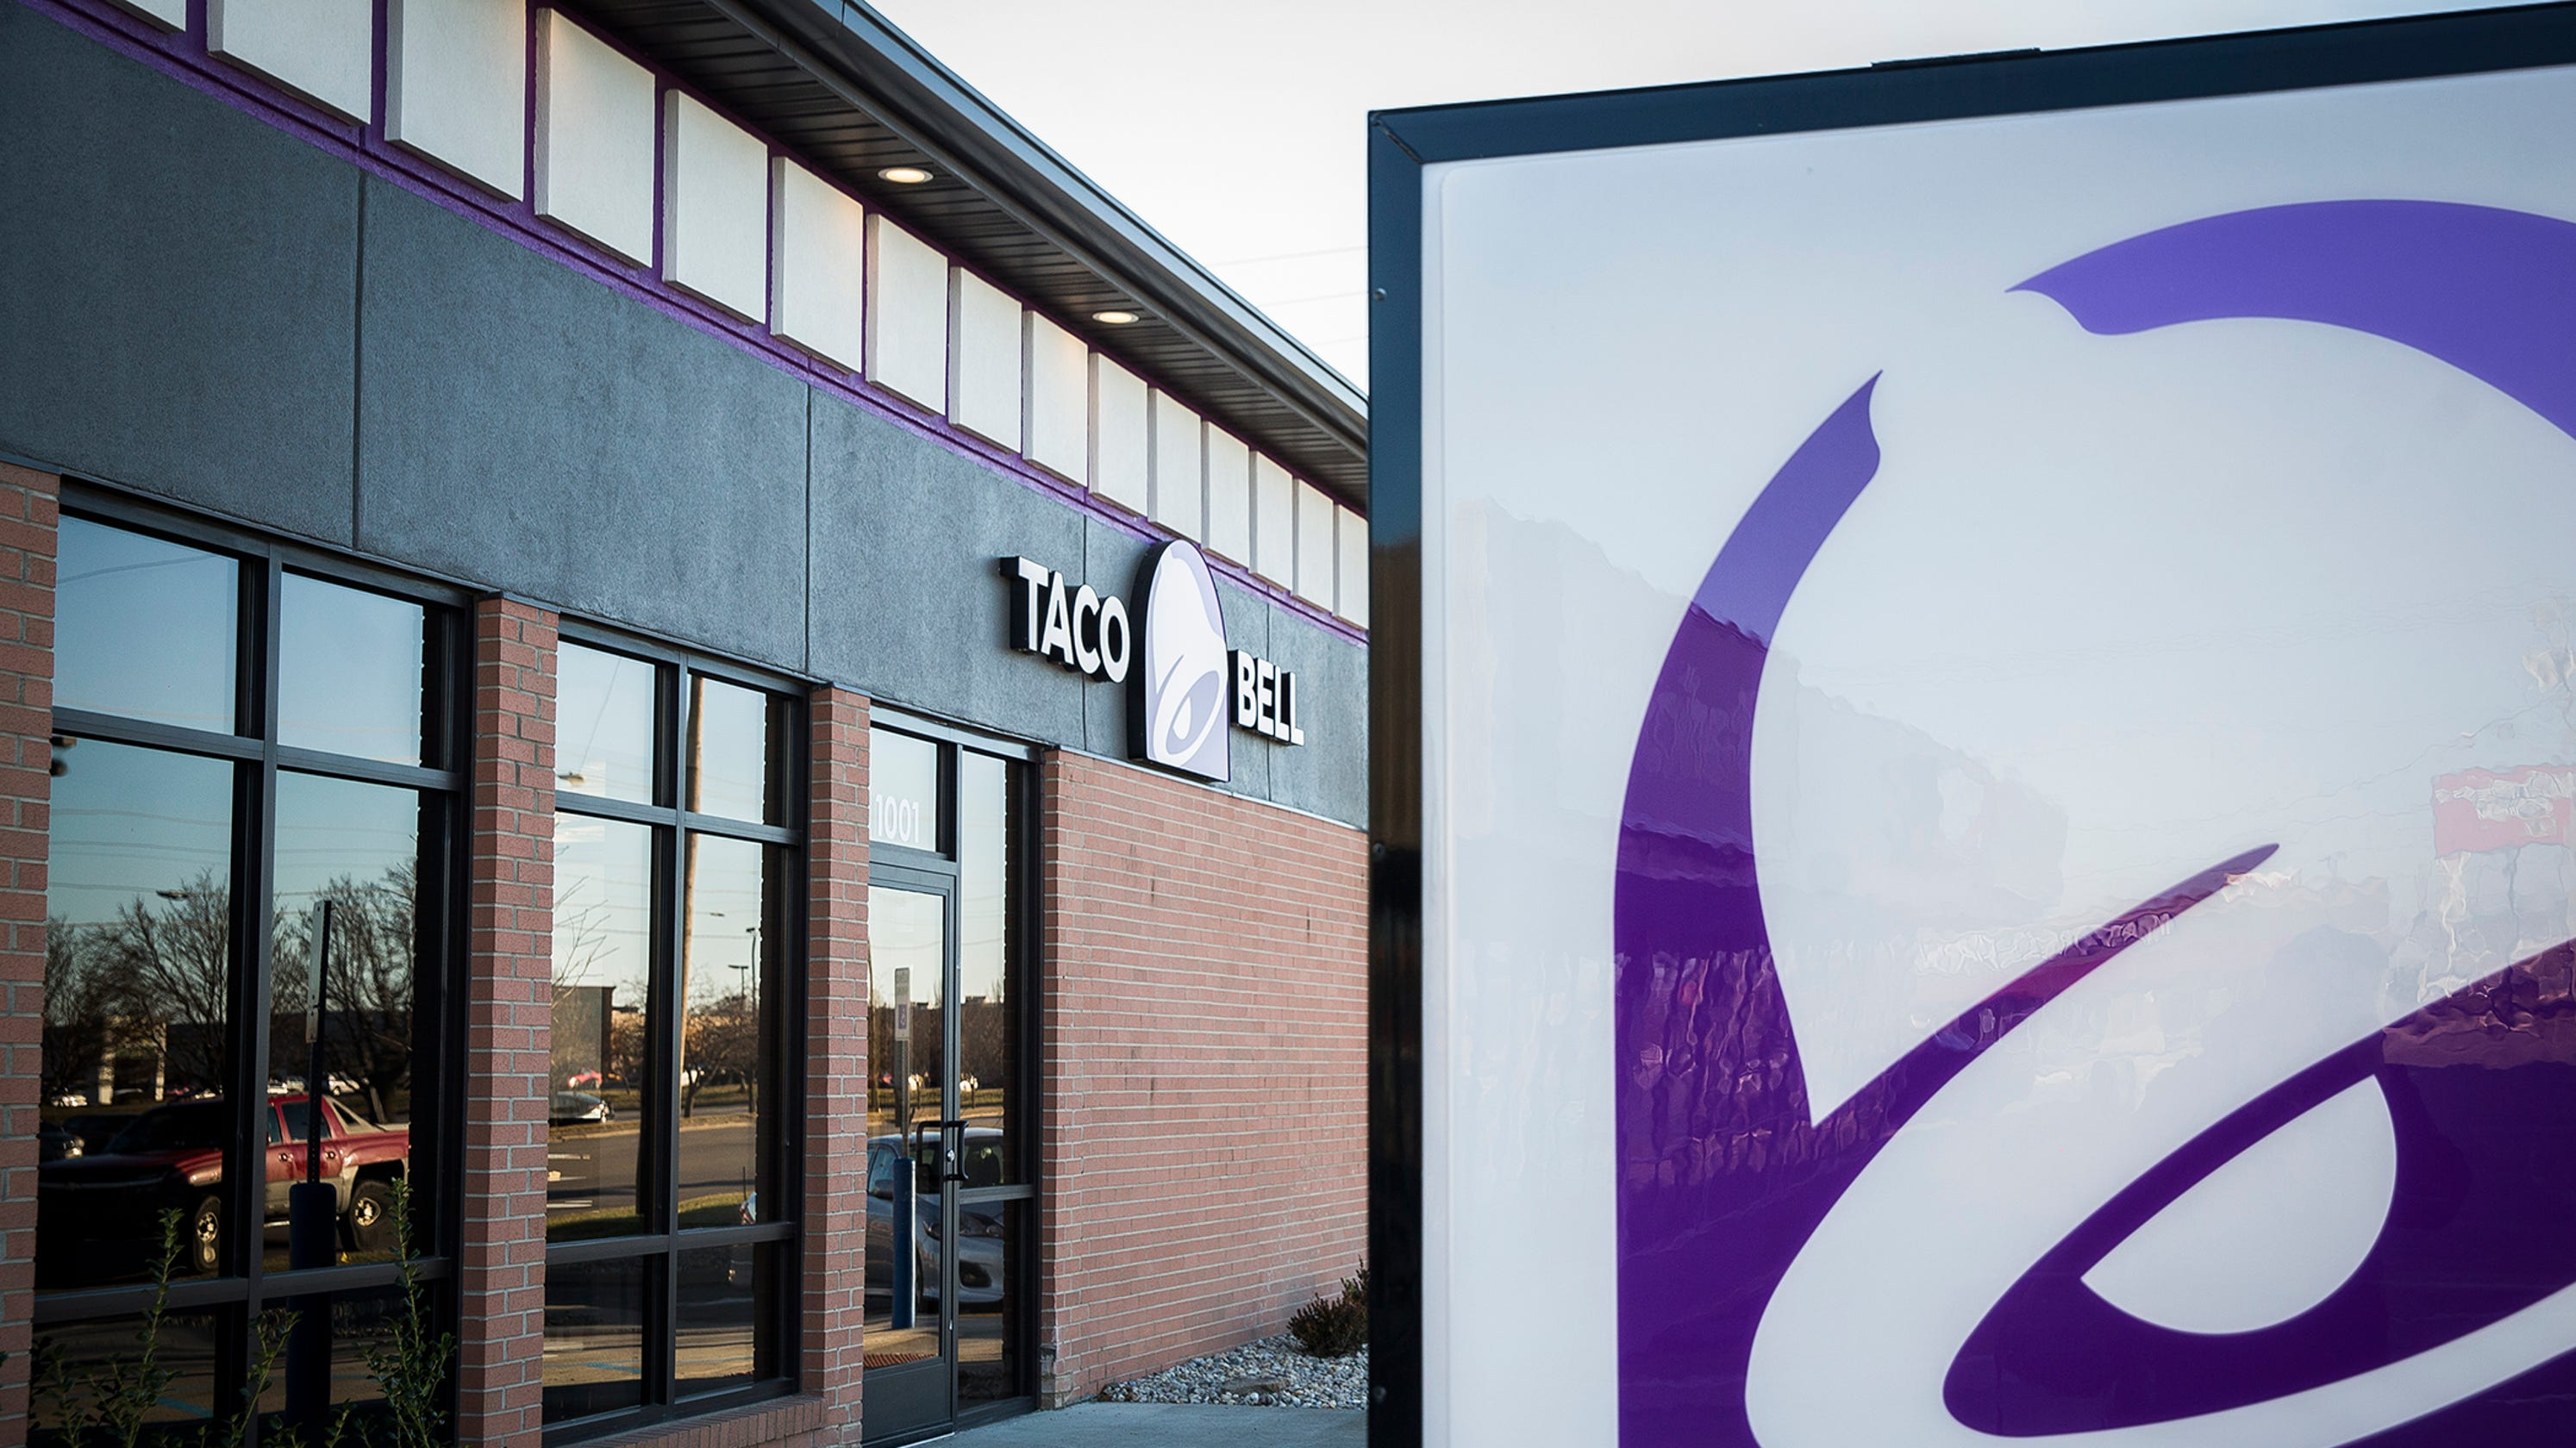 Taco Bell Opens In Old Bank Building In Muncie Indiana